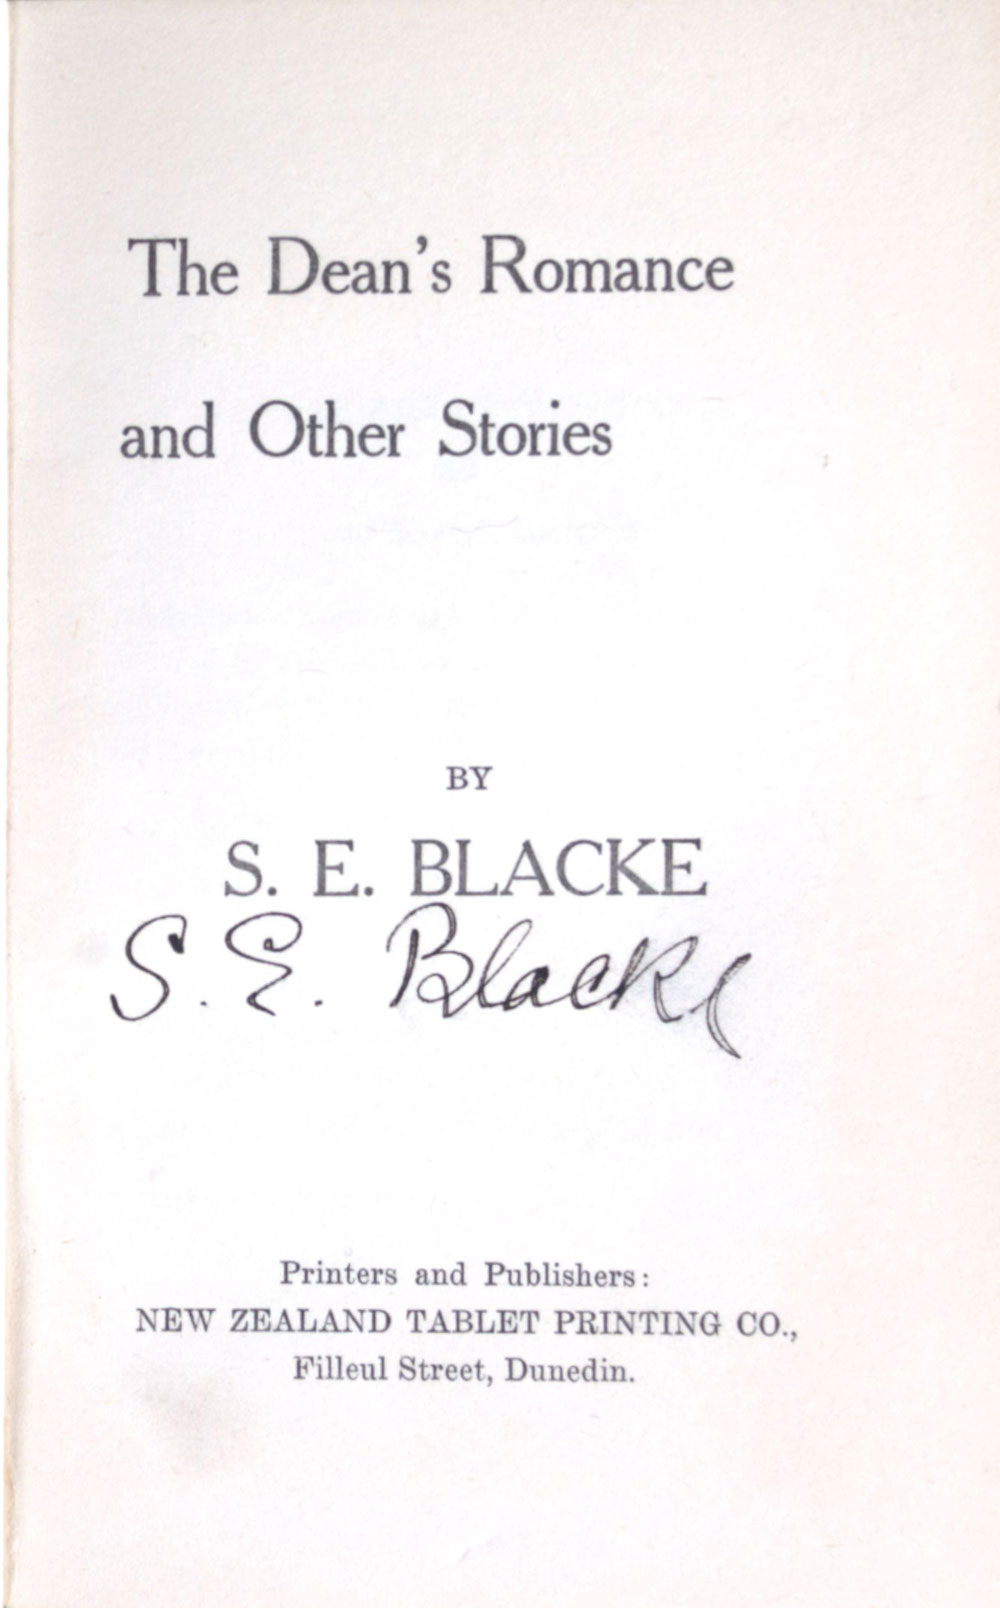 S.E. Blacke. <em>The Dean's romance and other stories.</em> Dunedin: New Zealand Tablet Printing Co., [1920]